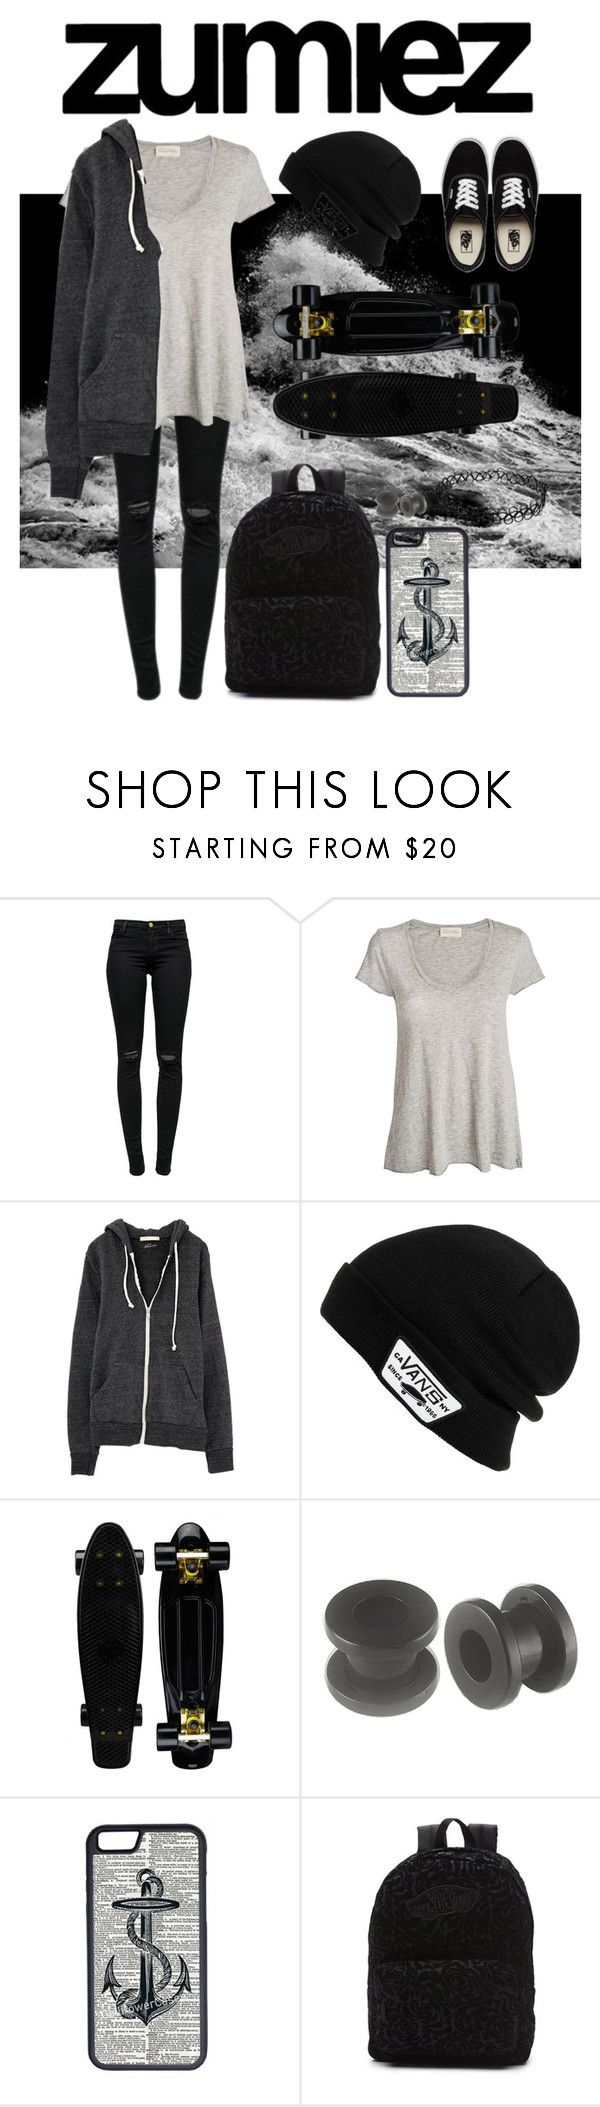 """""""Zumiez obsessed skater inspired look"""" by mxxrtyr ❤ liked on Polyvore featuring J Brand, American Vintage, Vans and CellPowerCases"""